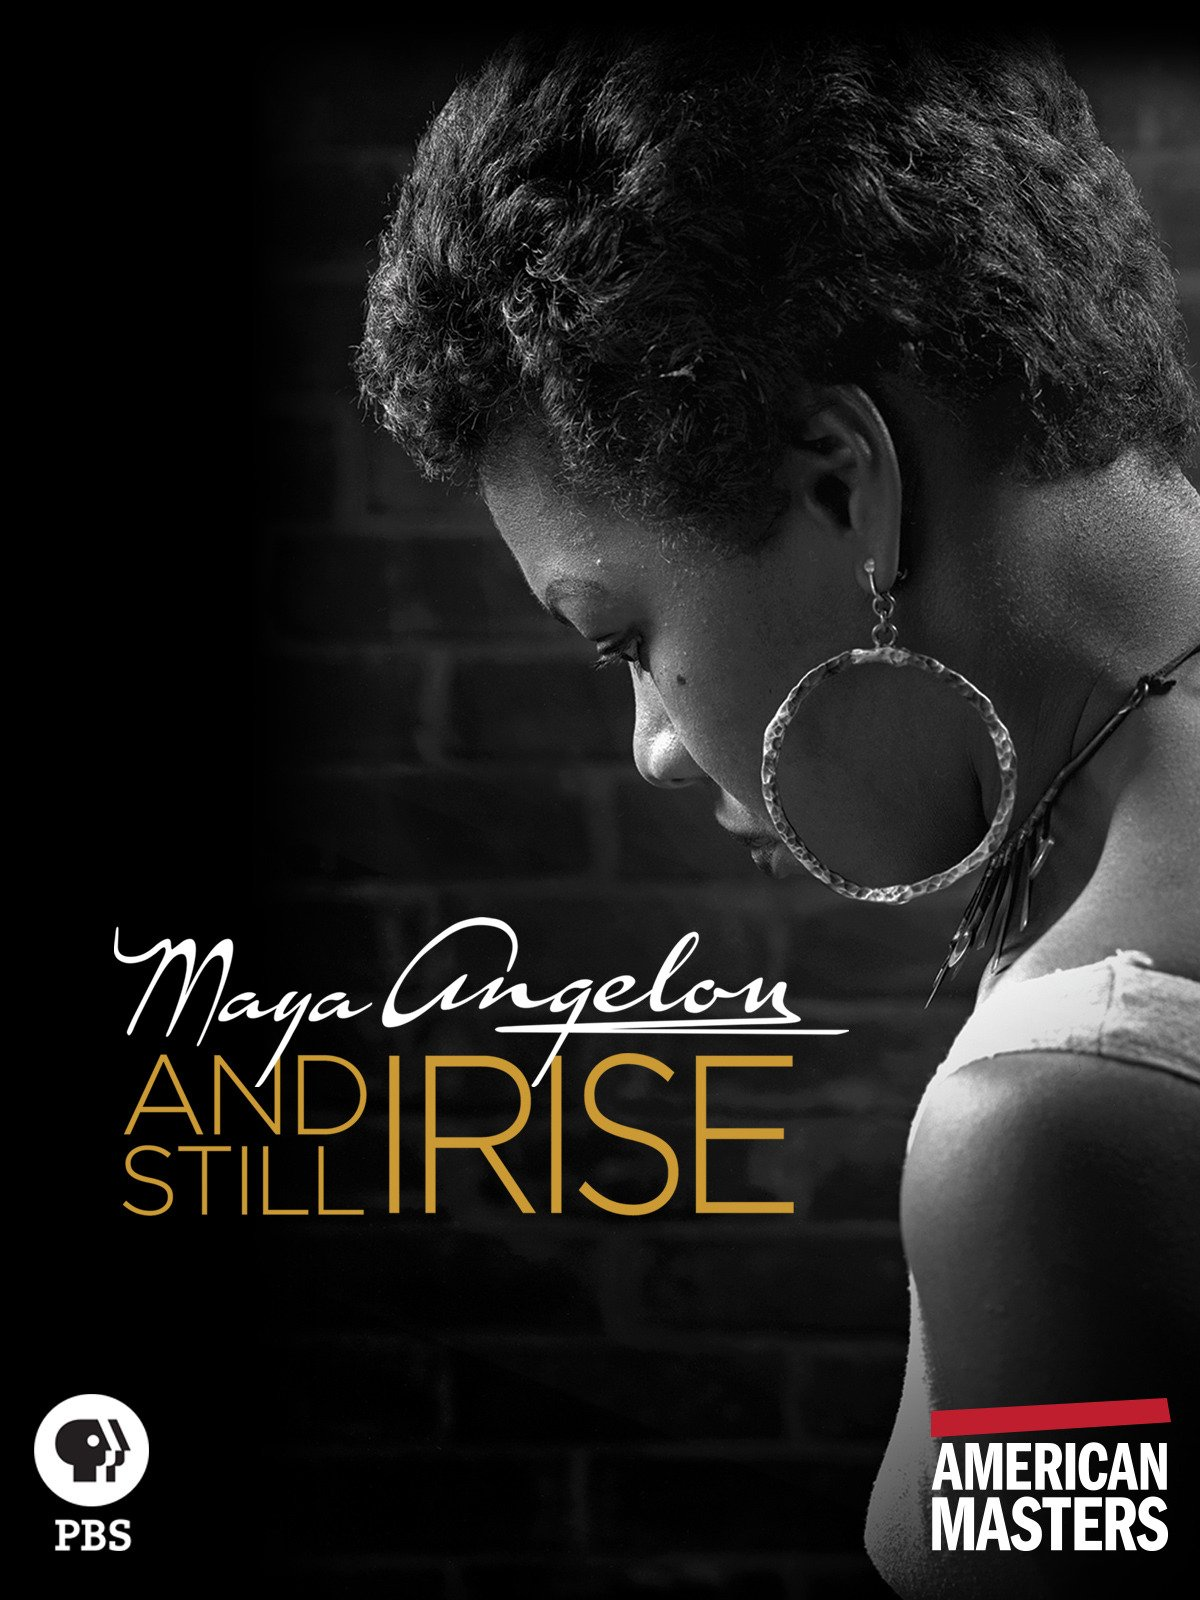 cover image, Maya Angelou and still I rise